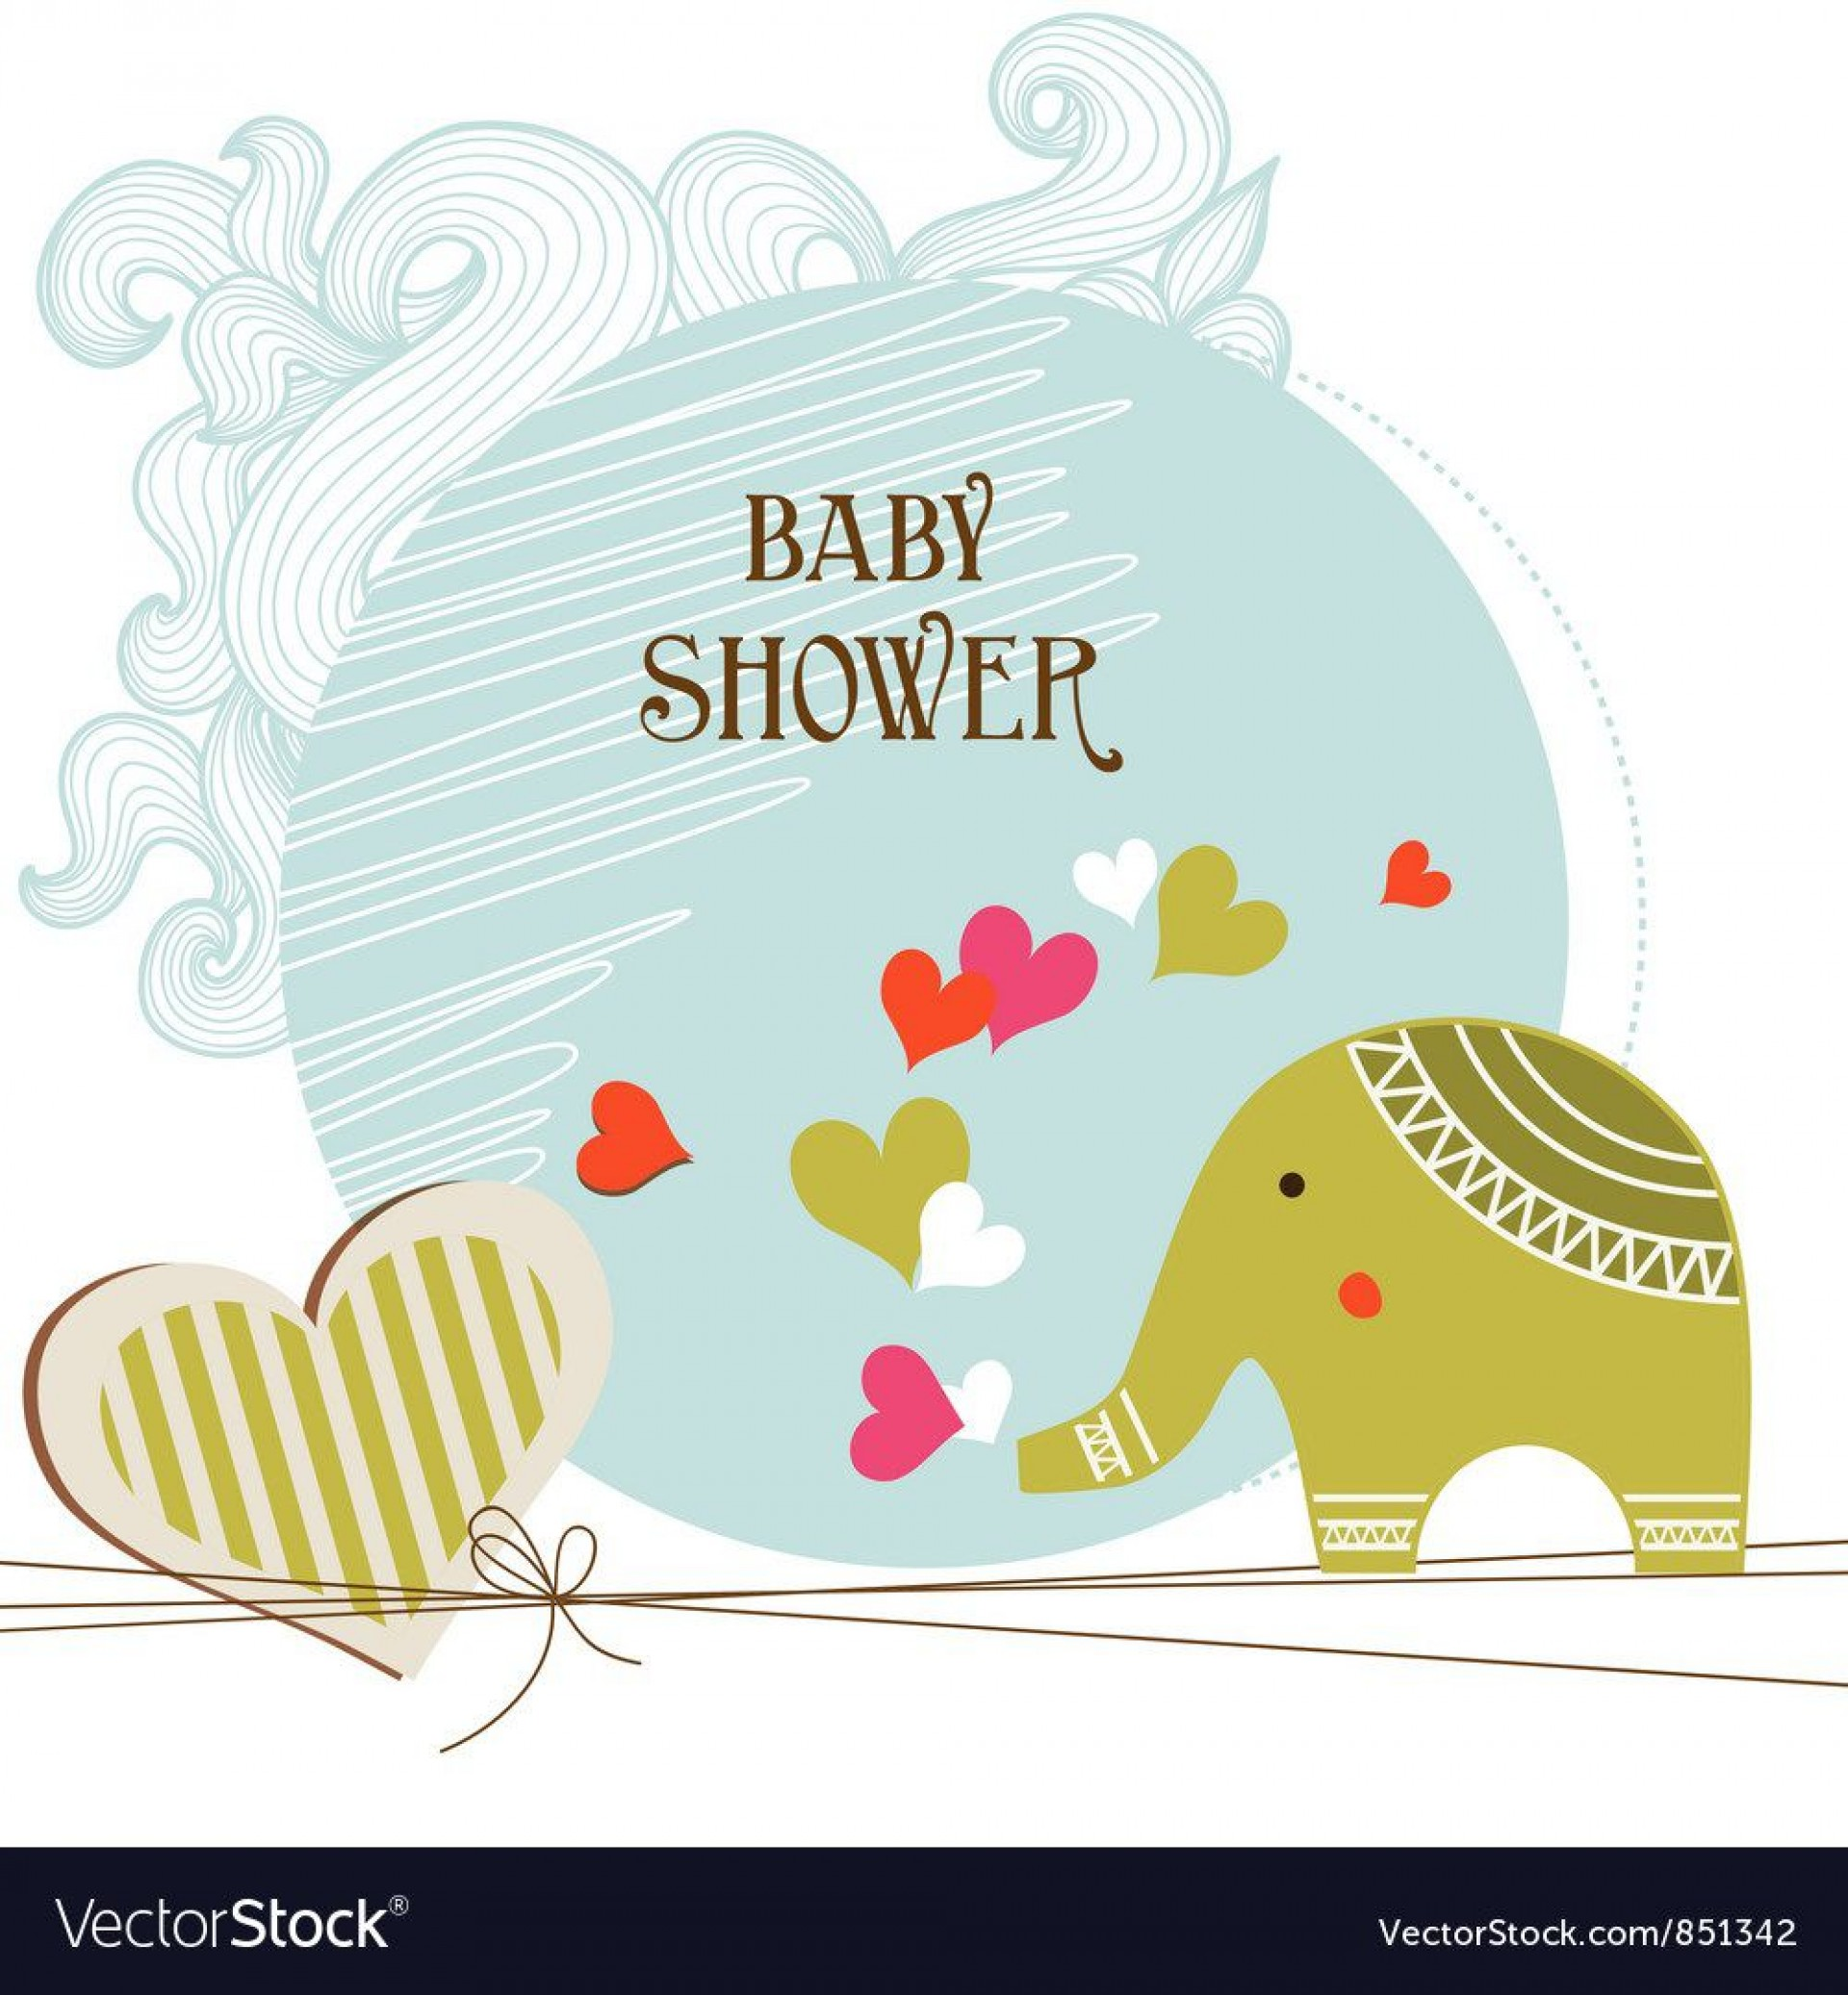 006 Top Baby Shower Card Design Free Idea  Template Microsoft Word Boy Download1920